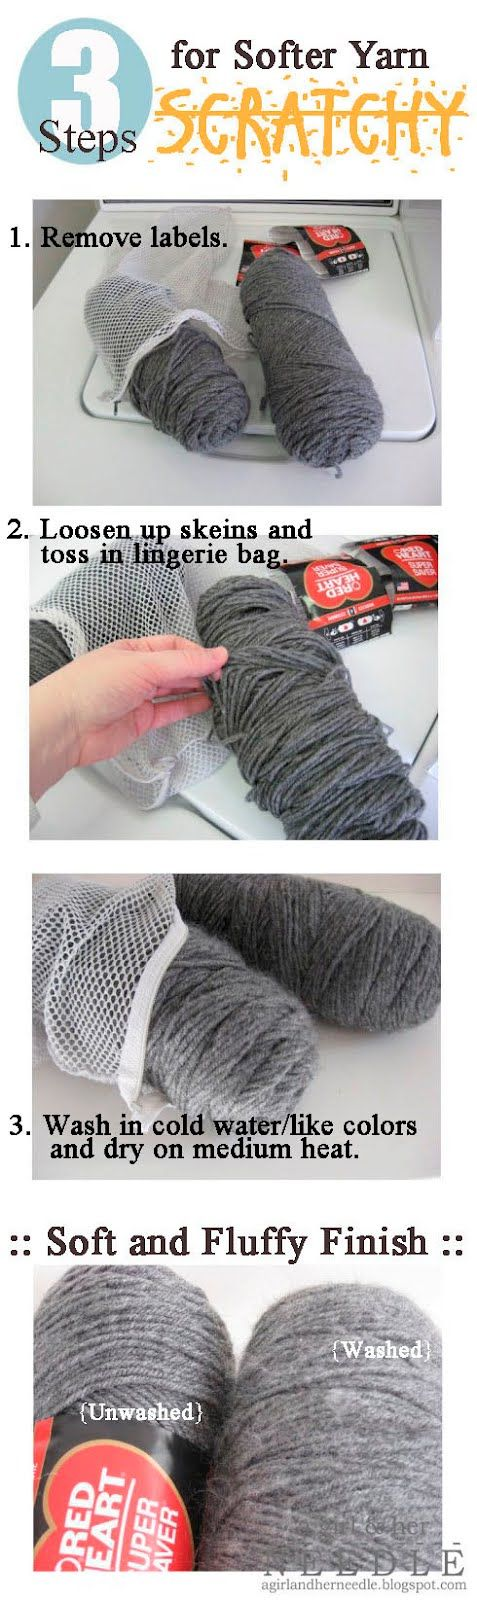 How to soften cheap acrylic yarns.  Worth a try!